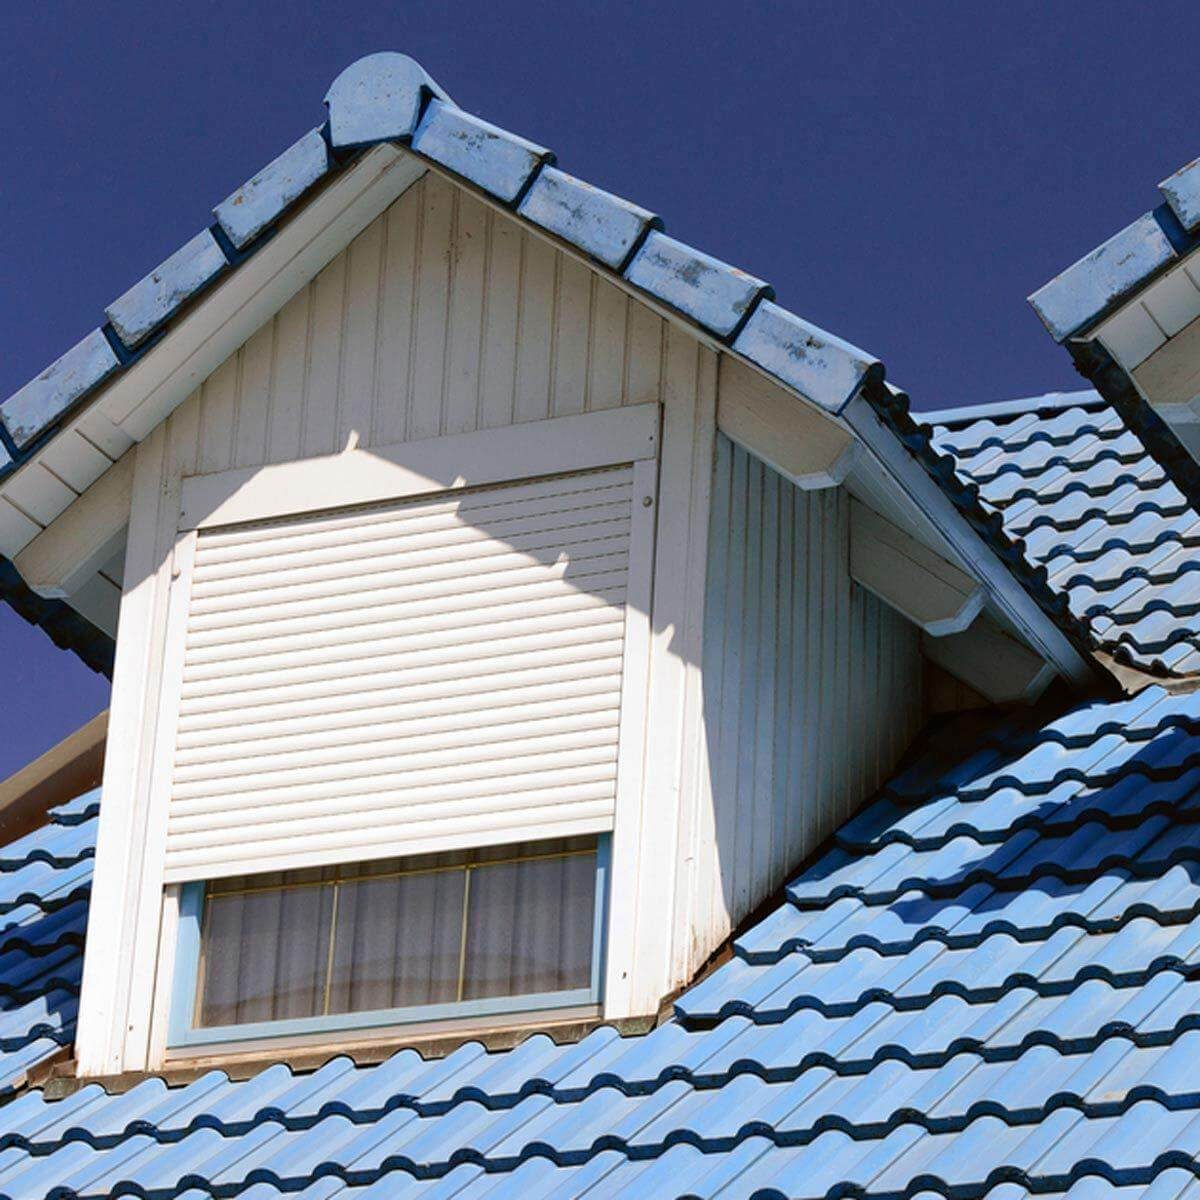 Color Trends What S New What S Next: What's New In Residential Roofing Materials